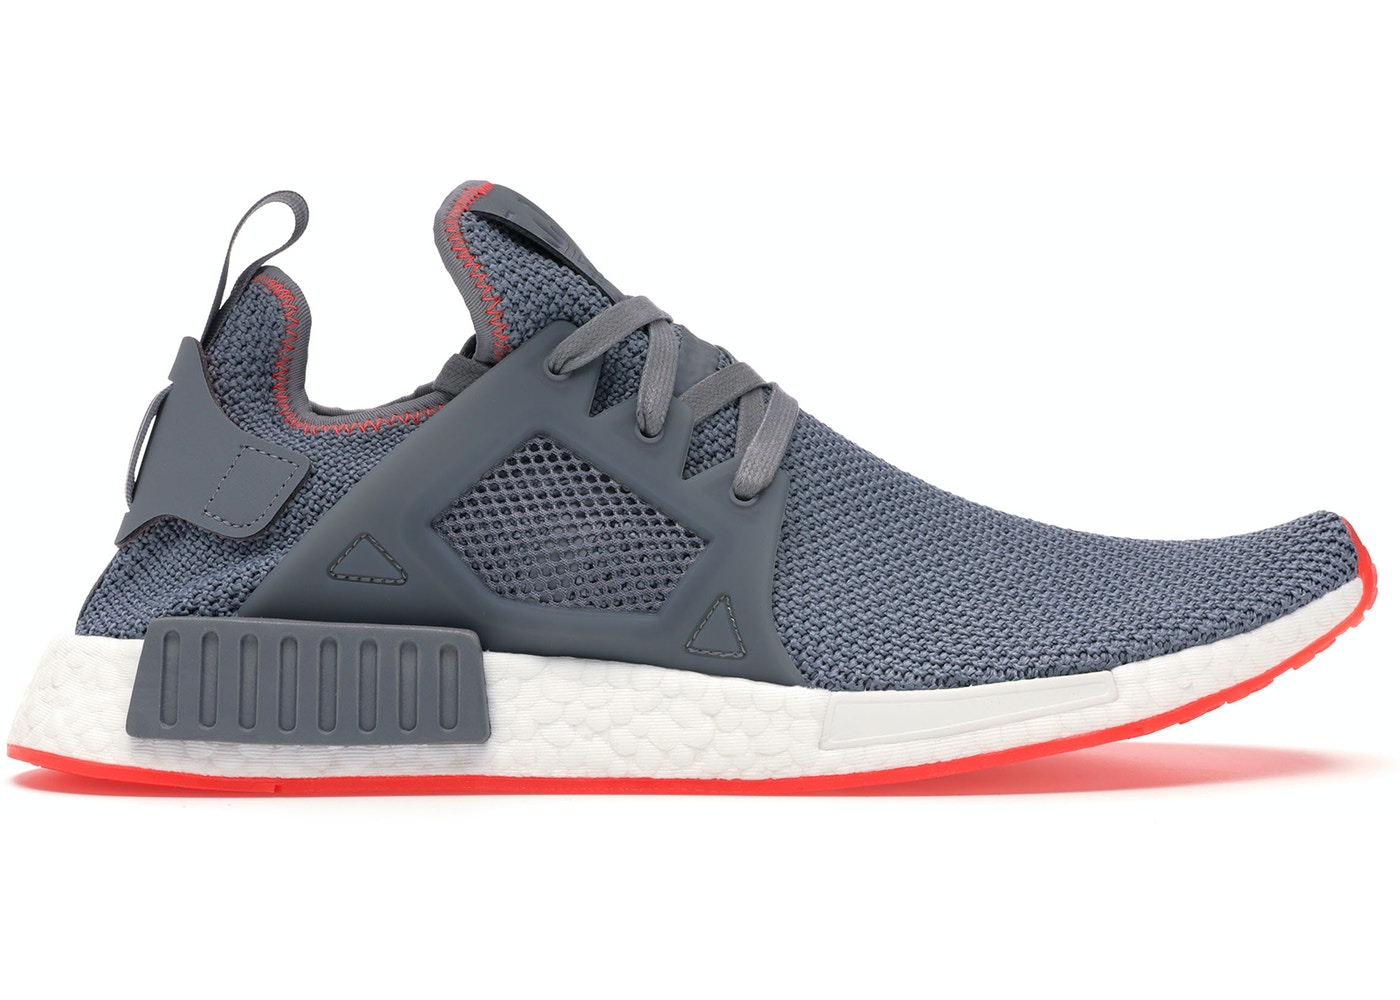 online store b0f83 8d018 adidas NMD XR1 Shoes - Release Date